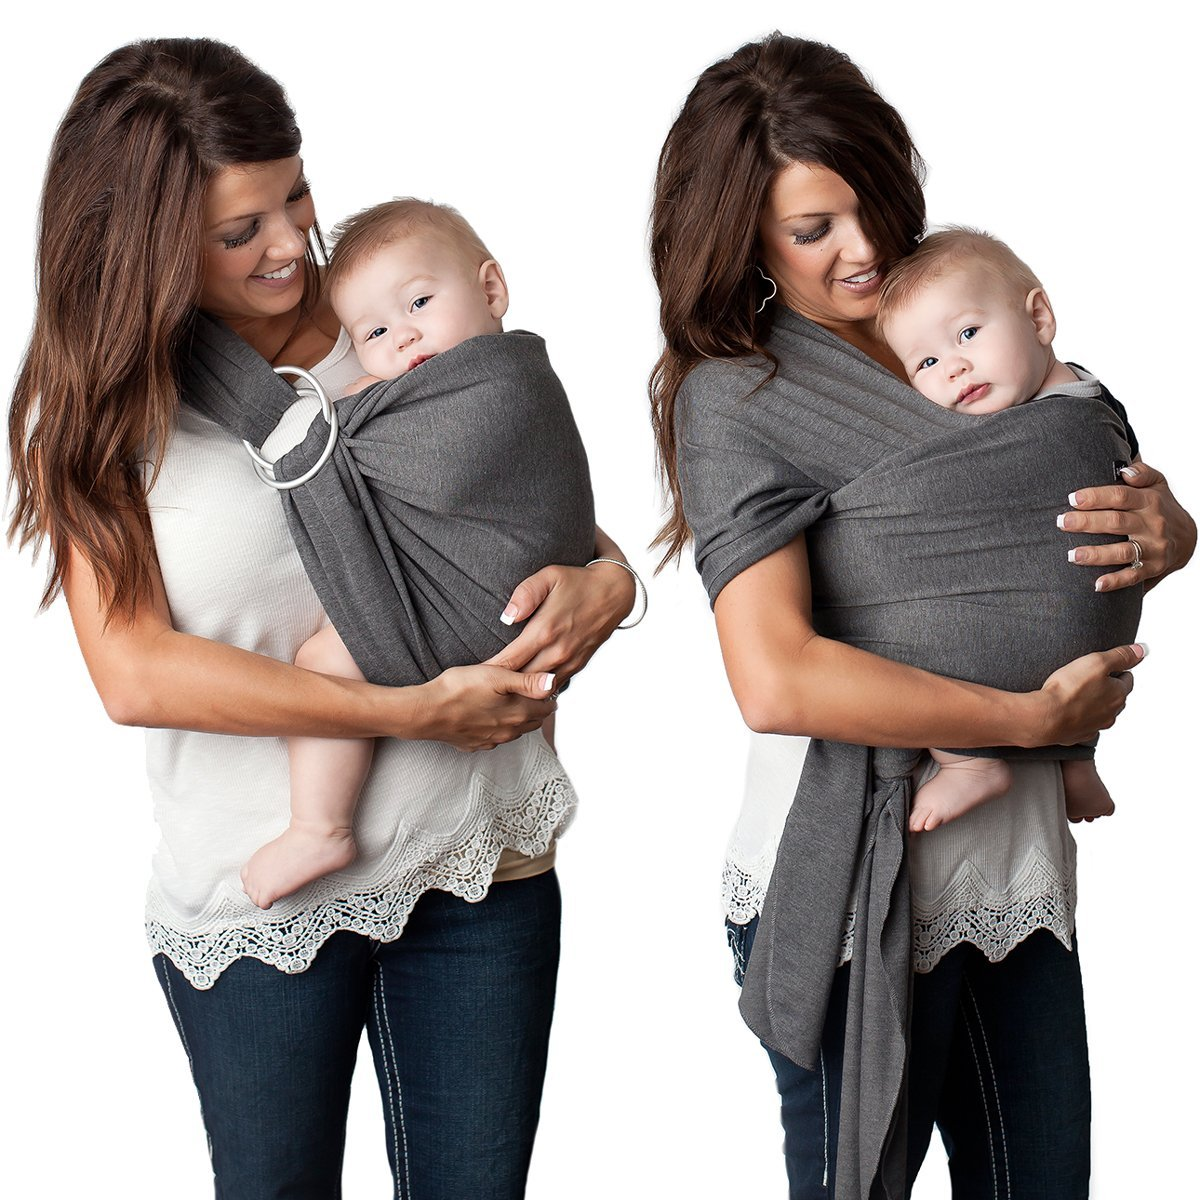 ace2094023e Amazon.com   4 in 1 Baby Wrap Carrier and Ring Sling by Kids N  Such ...